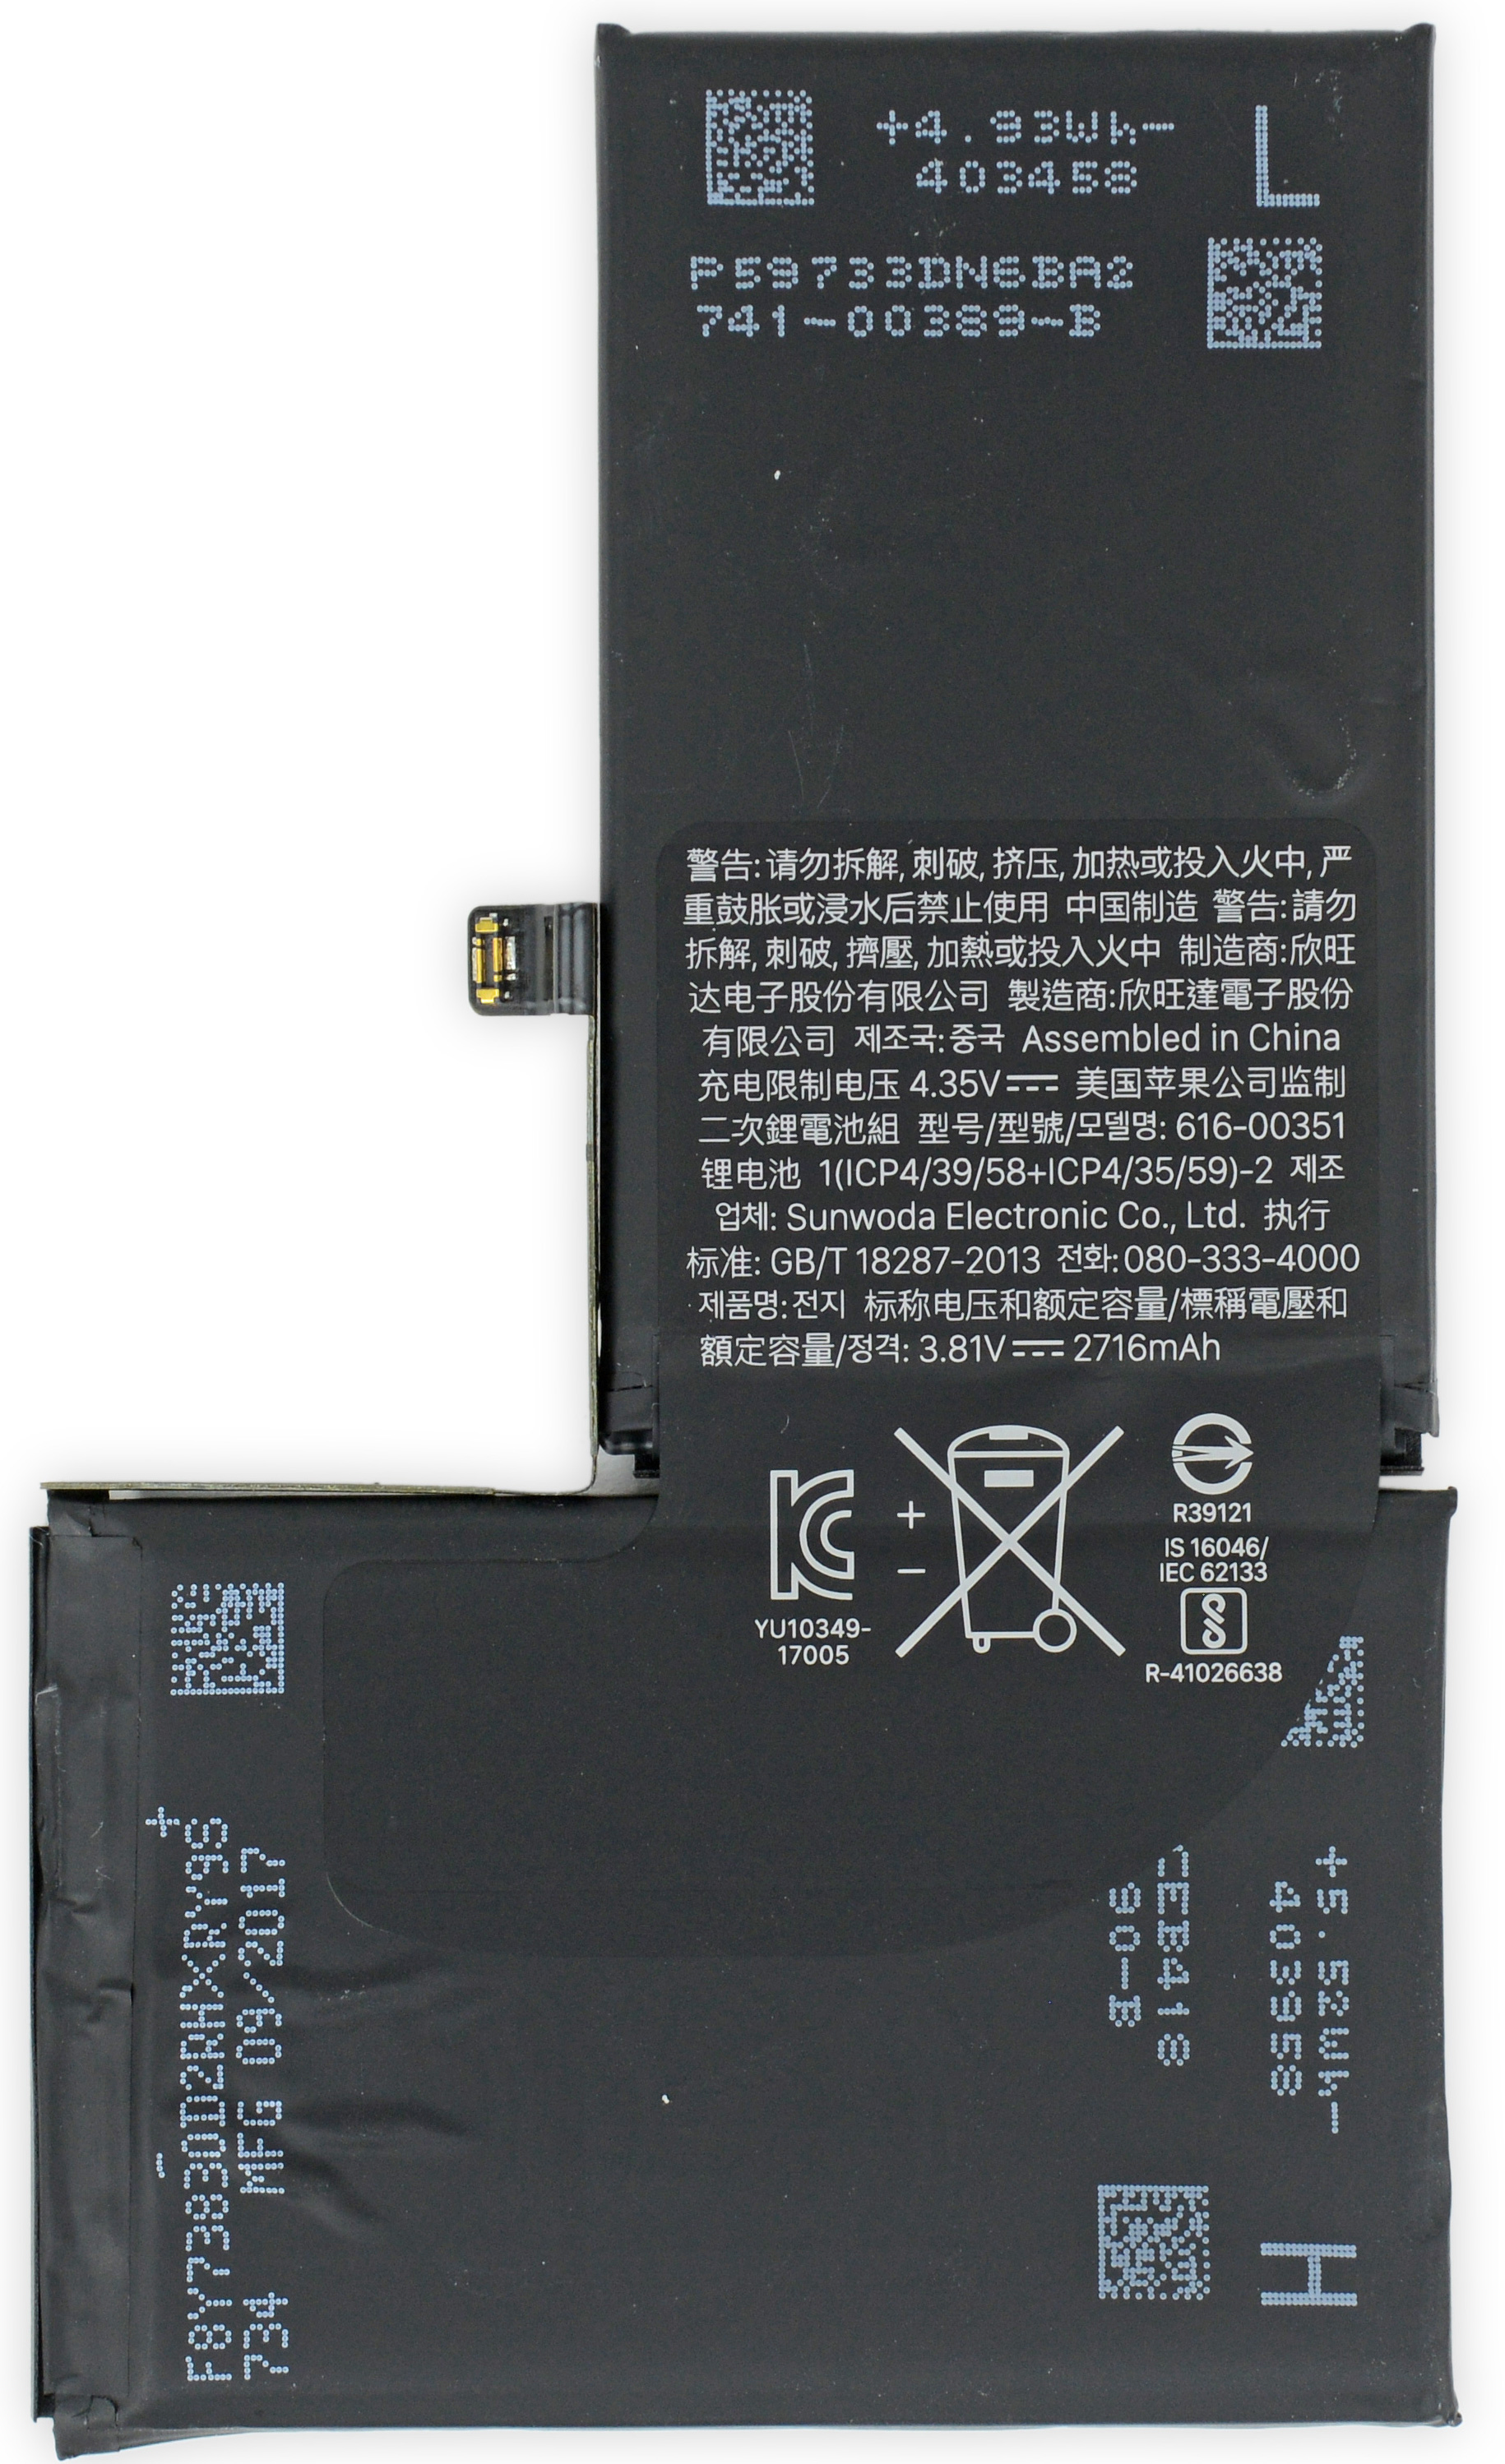 Battery of the iPhone X